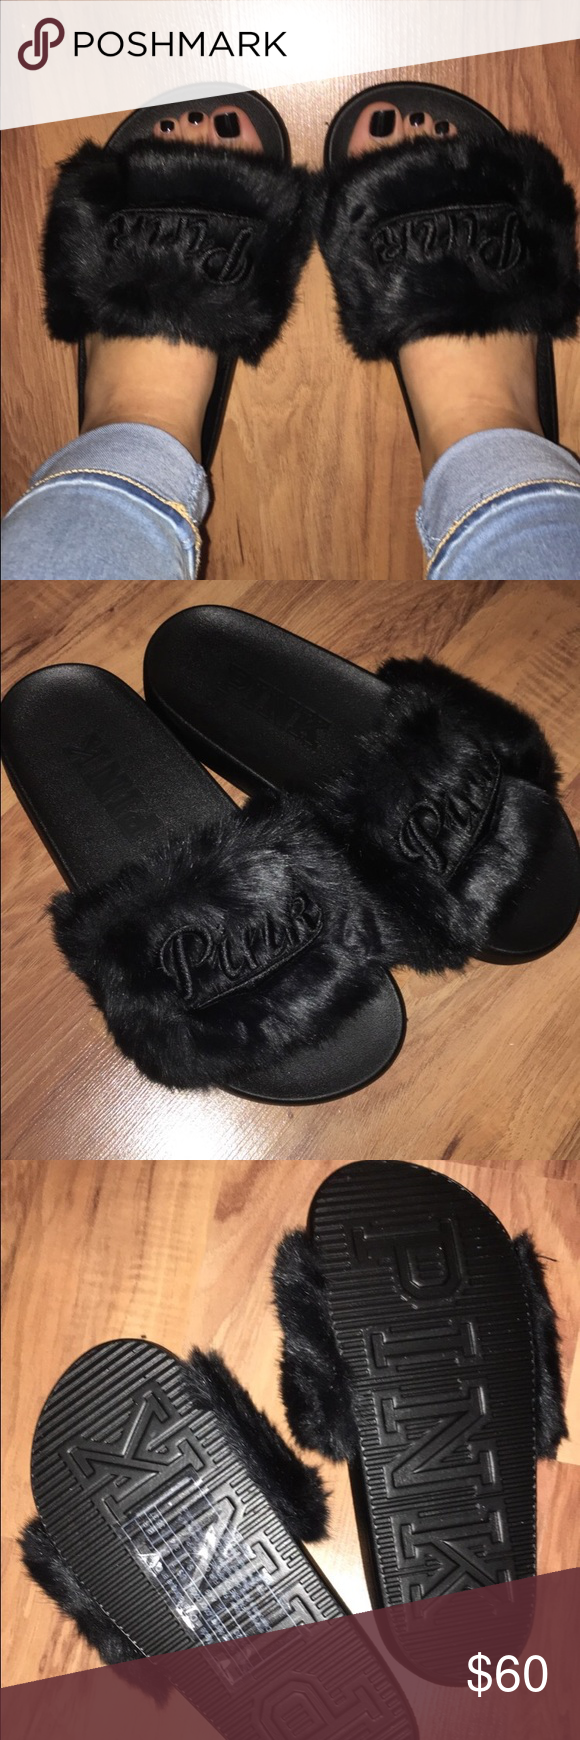 d8d64c6fdffe Im a size 6 so would fit 6 and below. Very very cute resembles the Rihannas  puma slides in black! PINK Victorias Secret Shoes Slippers